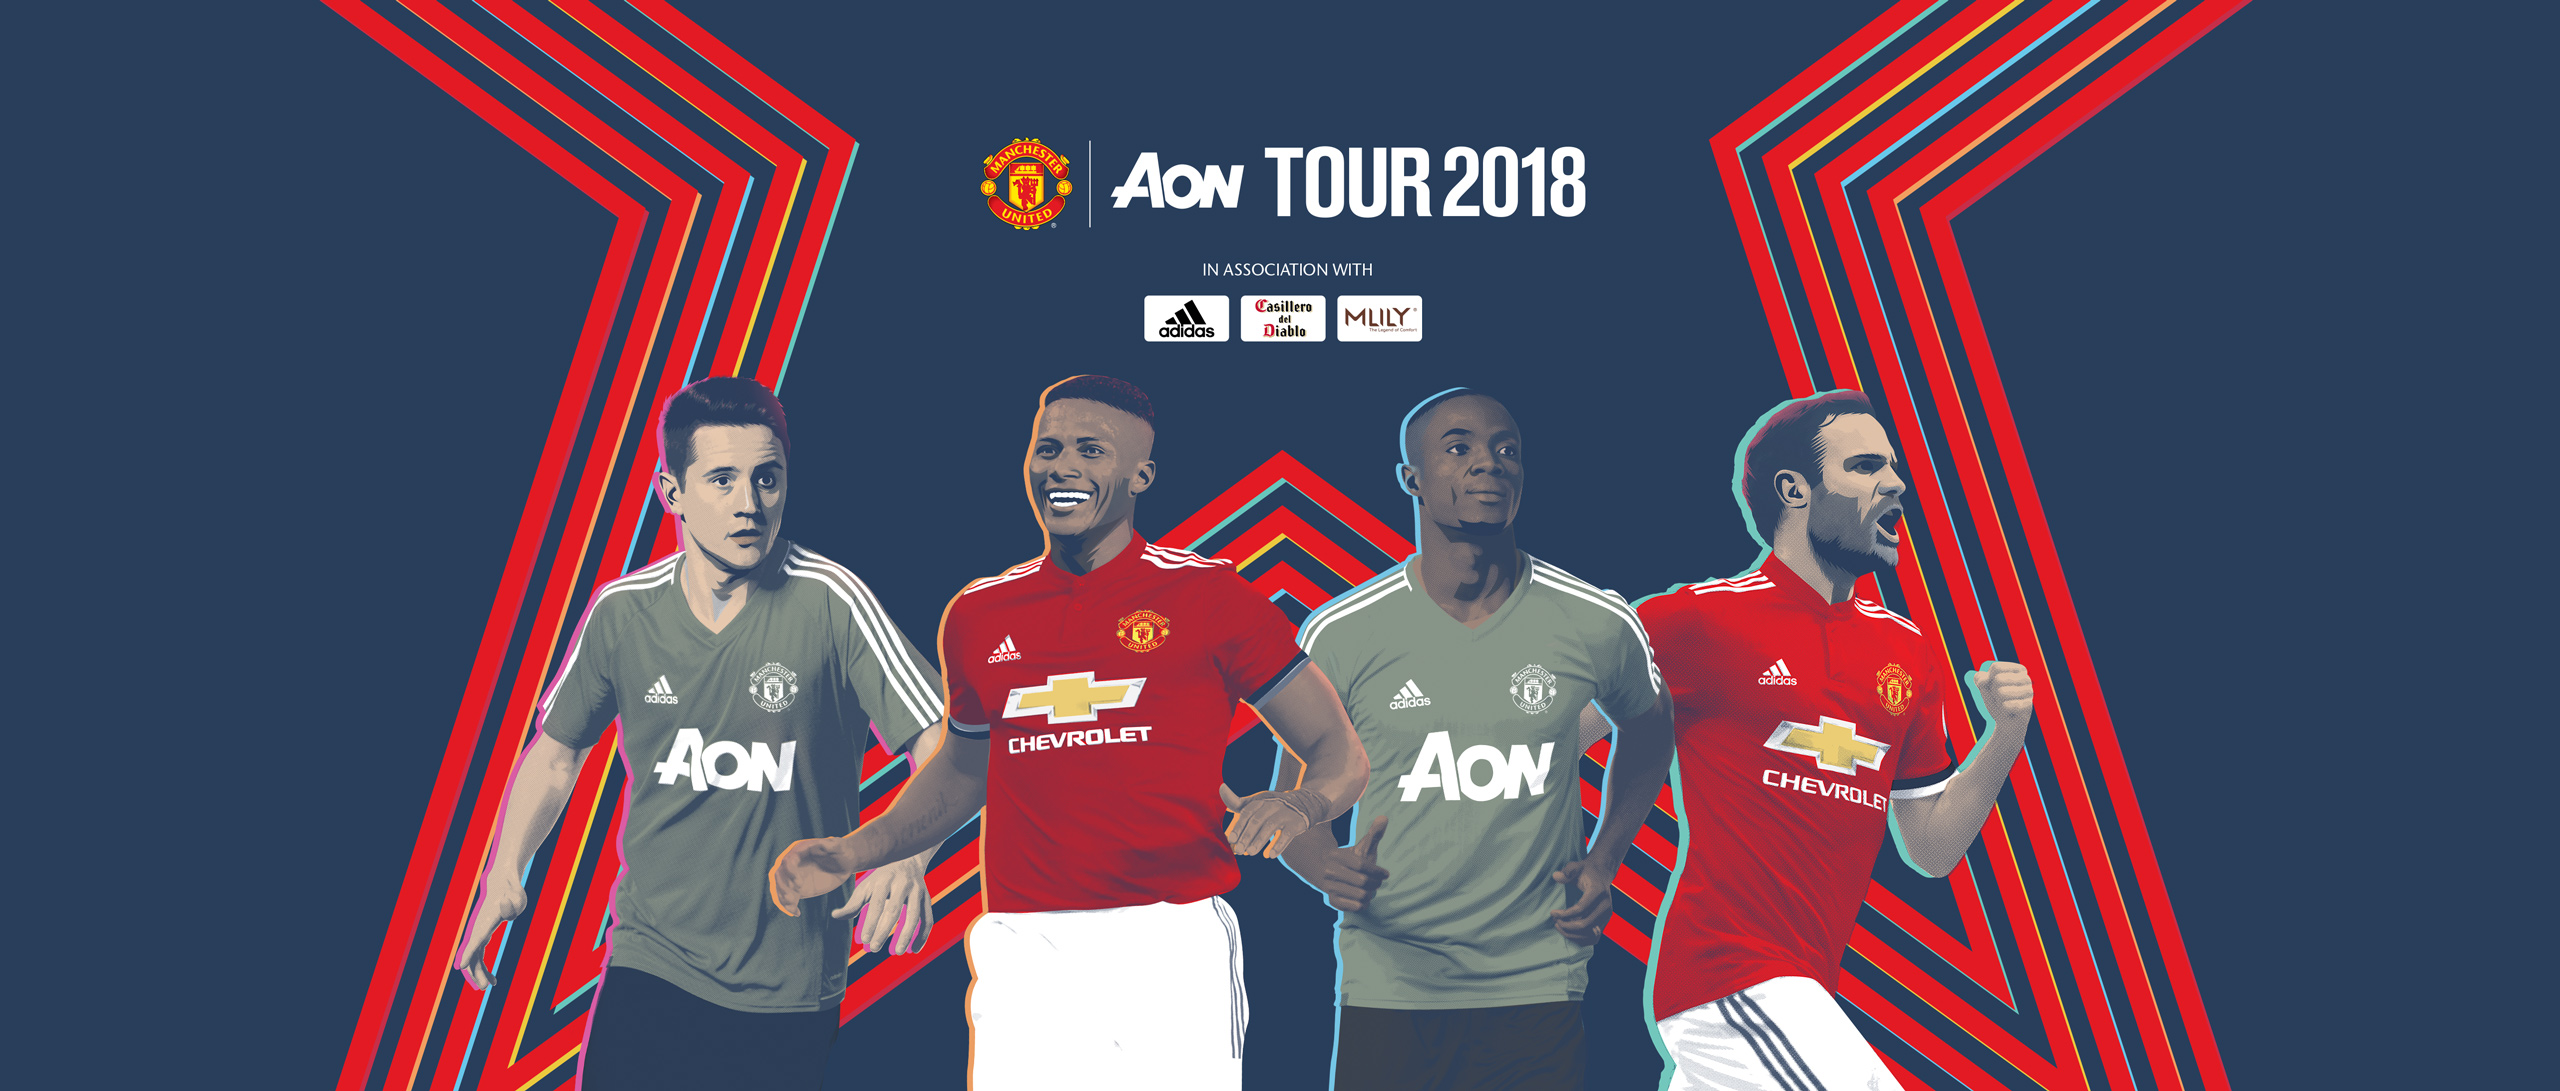 Tour 2018 presented by Aon